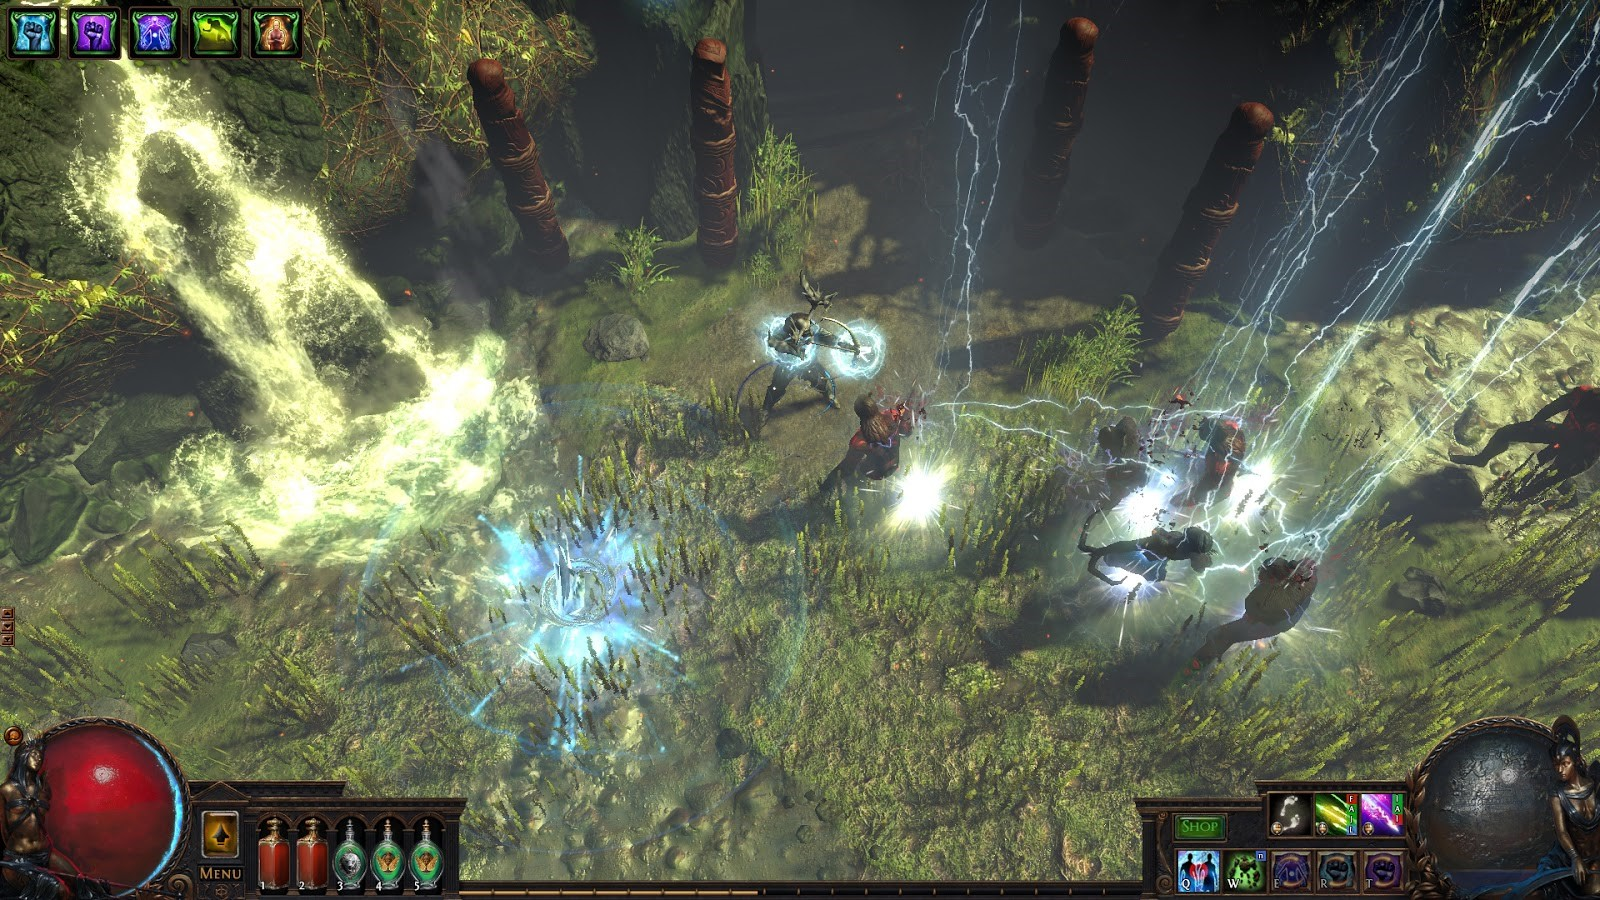 Path of Exile: The Fall of Oriath Press Preview